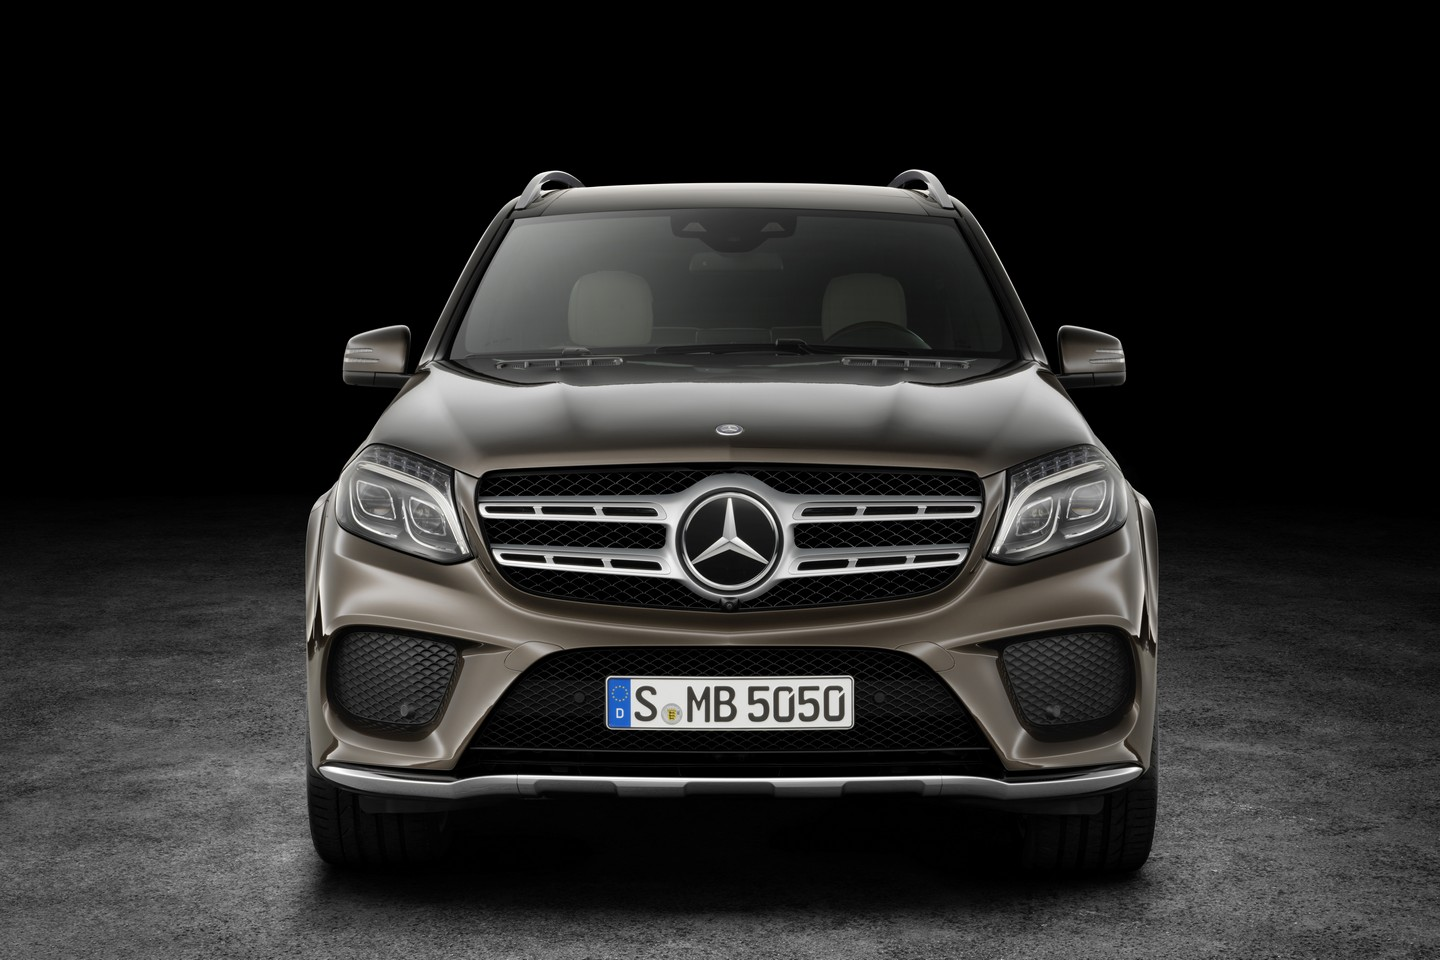 2017 mercedes benz gls fully revealed speed carz for 2017 mercedes benz gls350d 4matic